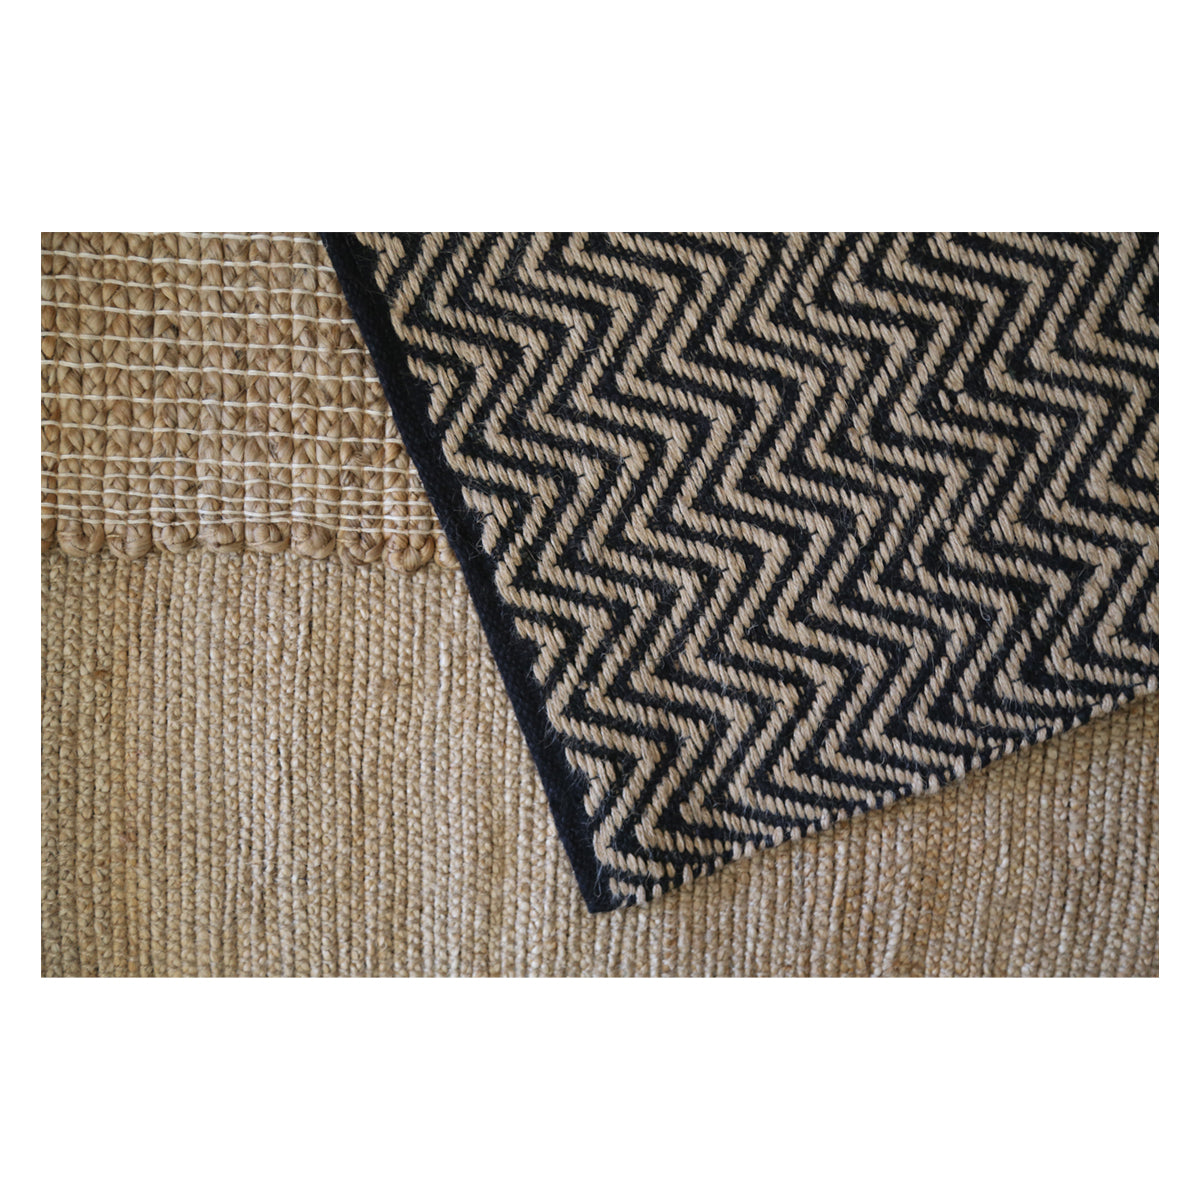 Jute Entry Mat, Zig Zag Natural and Black, 60x90cm